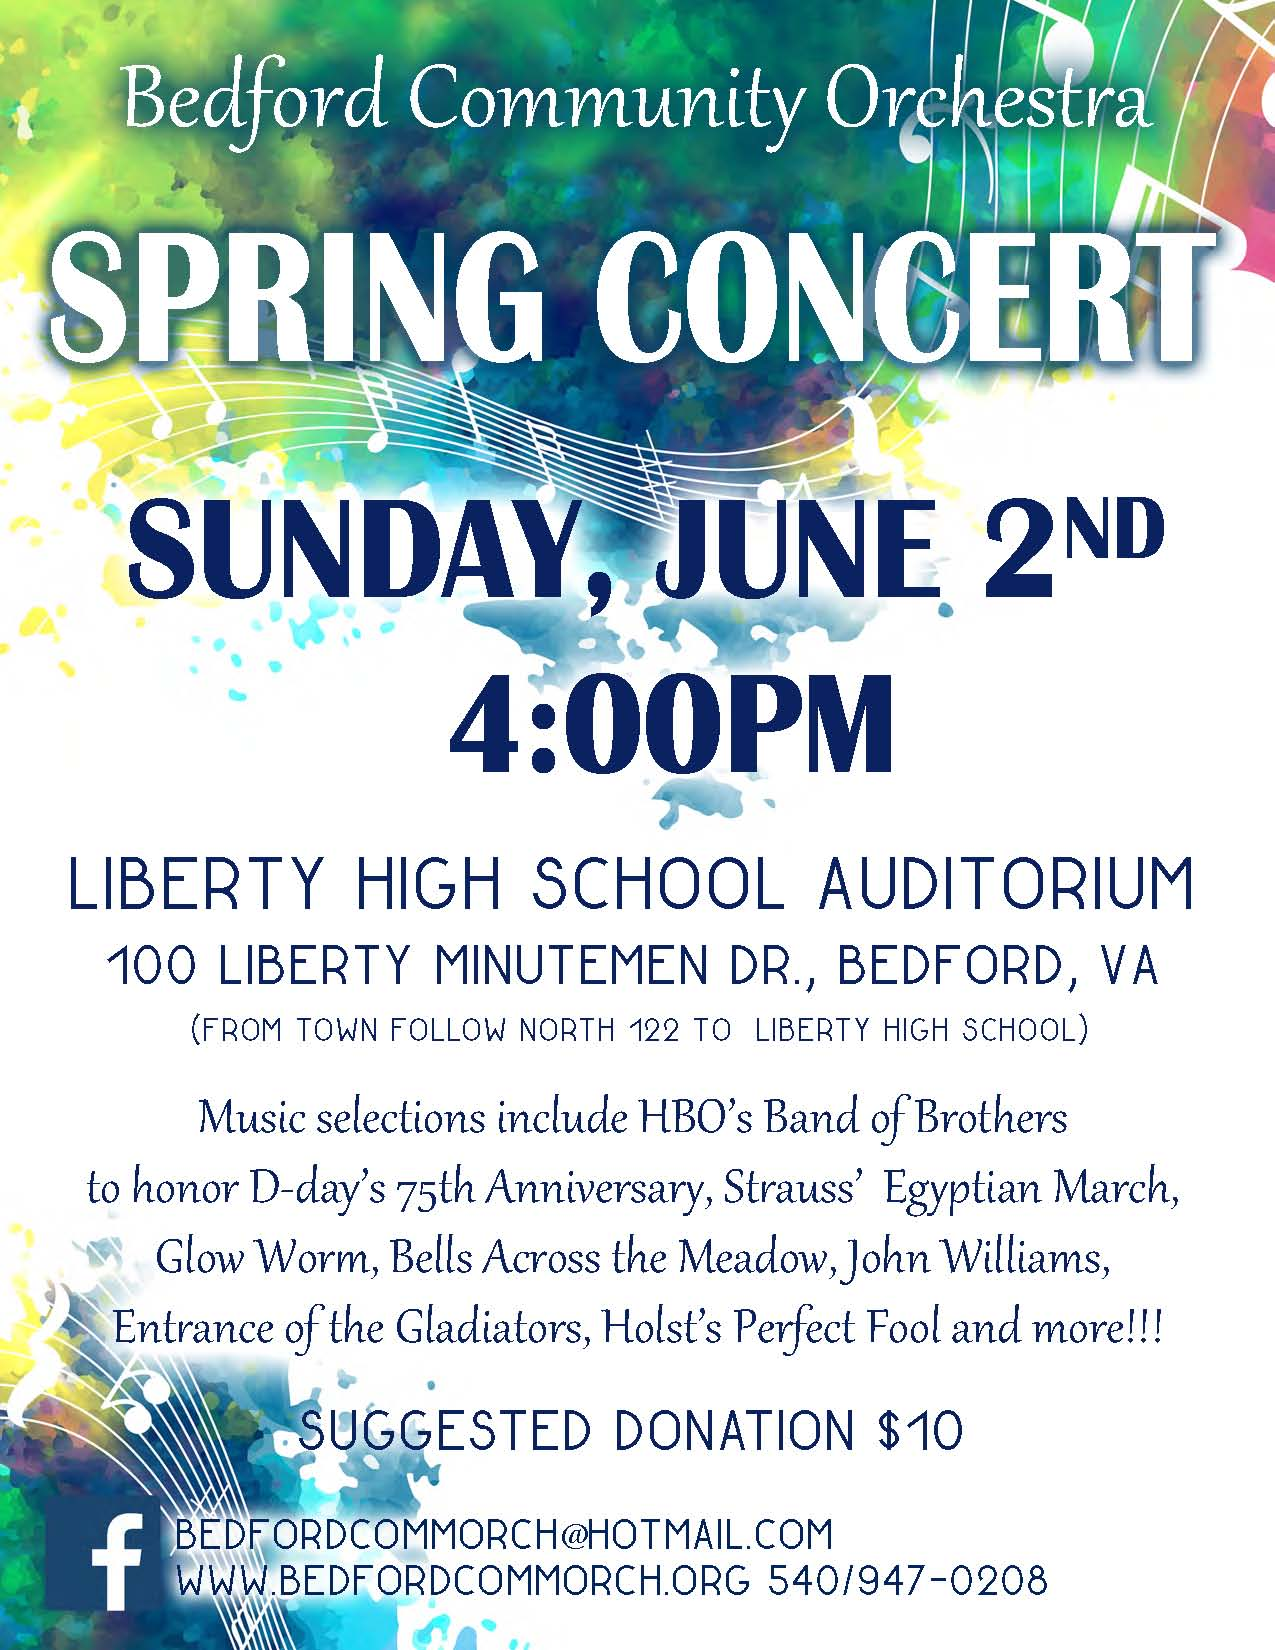 Spring Concert 2019 | The Bedford Community Orchestra